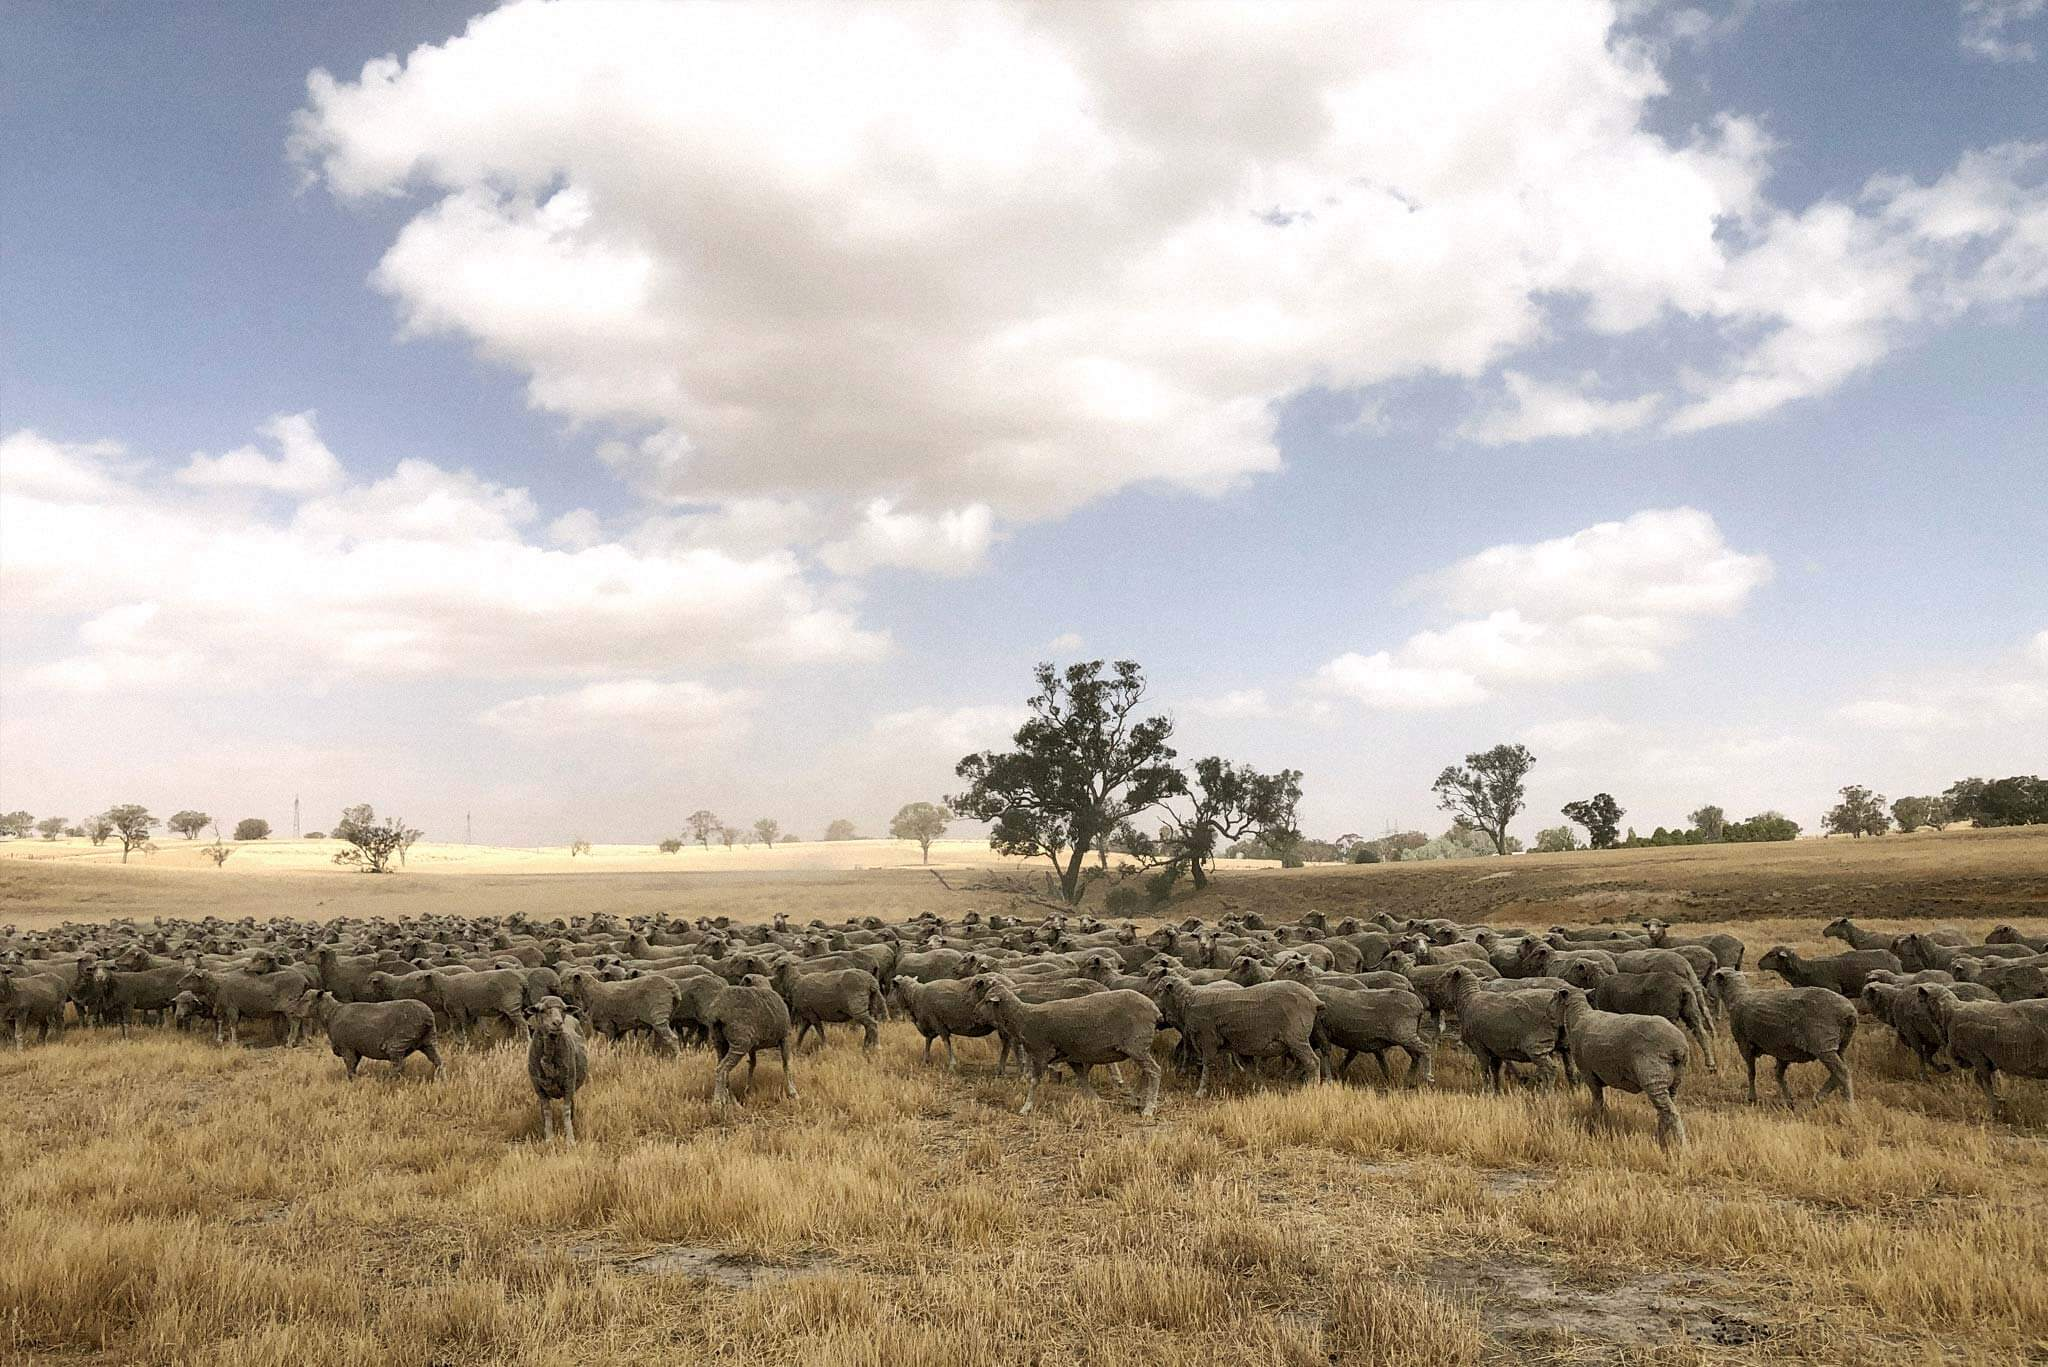 A field of recently sheared Merino sheep roaming a farm in rural New South Wales. Shot by Lisa Bergstrand.